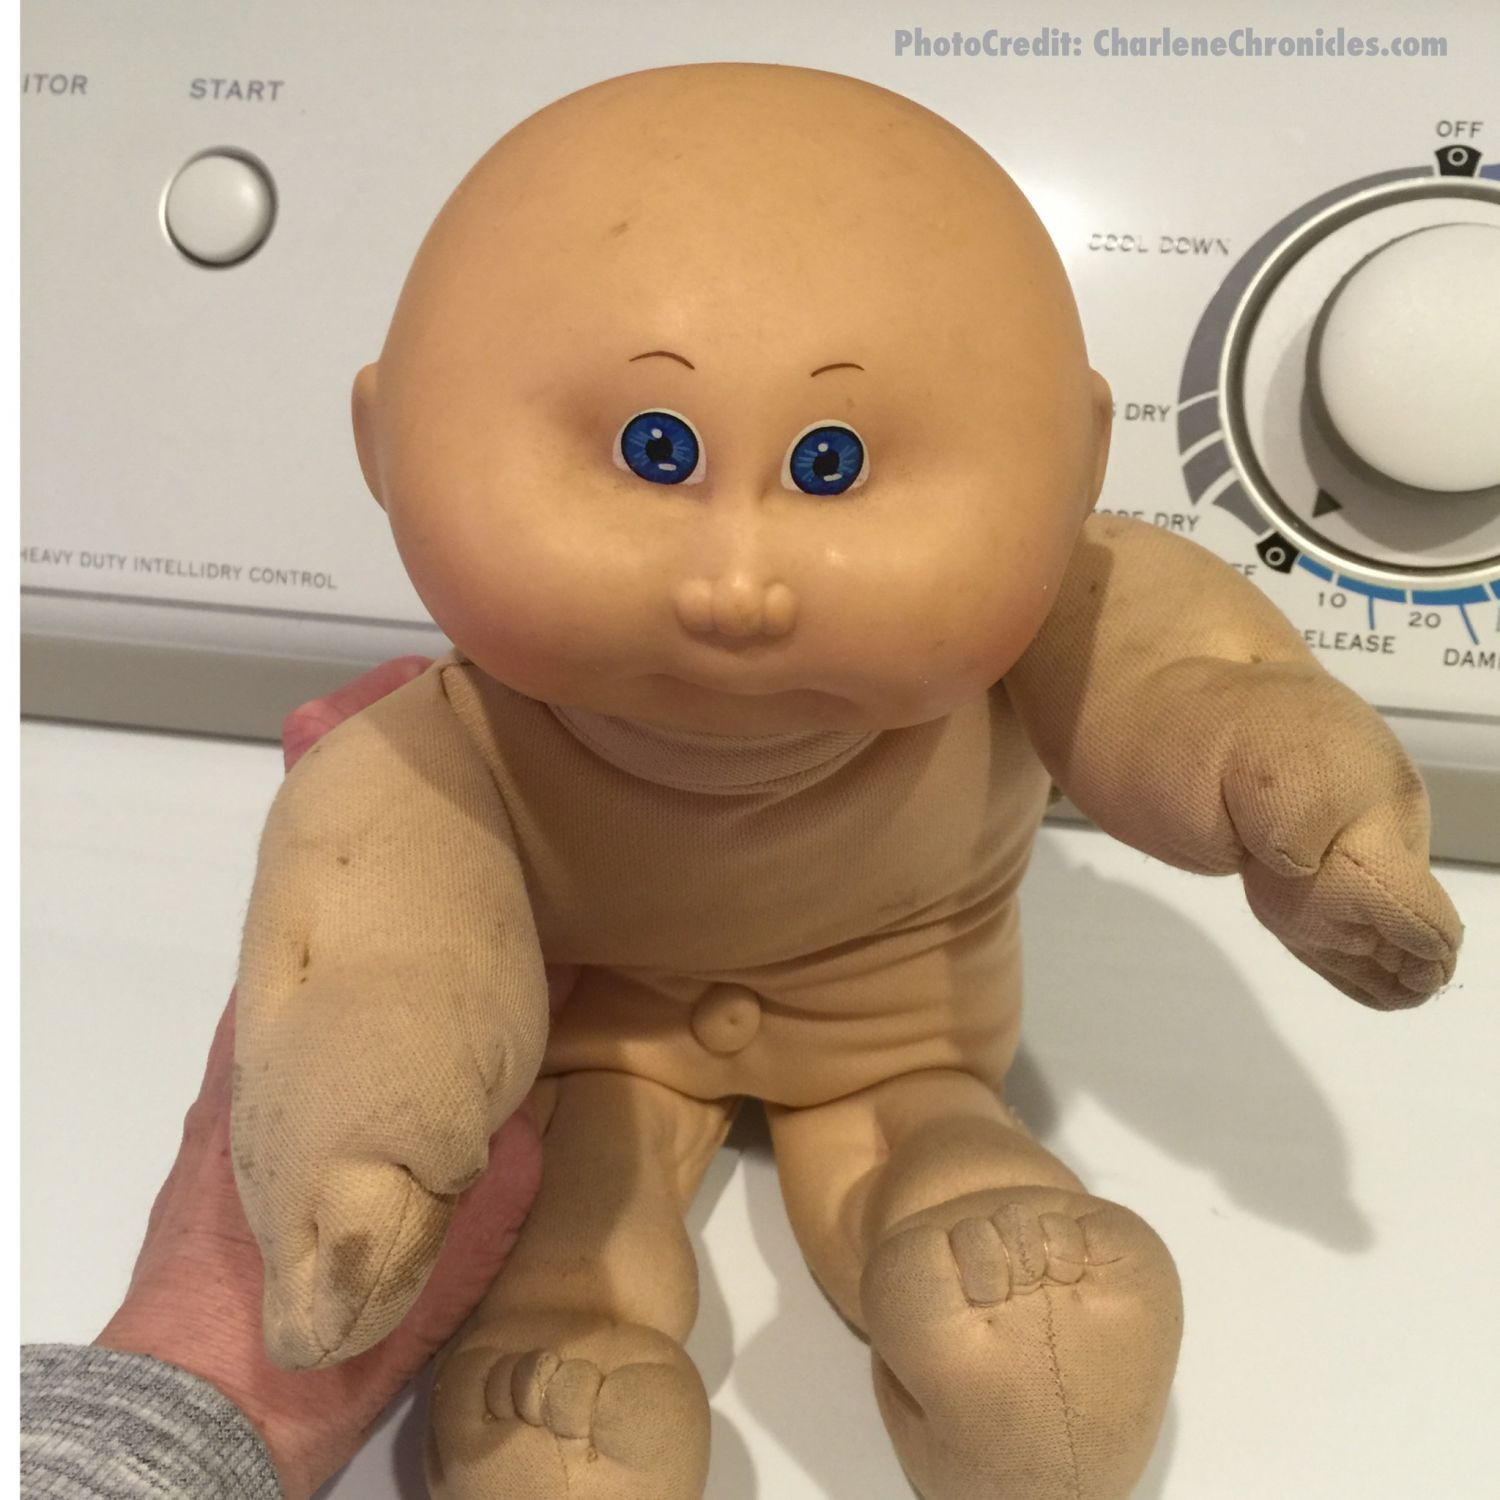 Cabbage Patch Kids Value Elegant Clean Vintage Cabbage Patch Kid toy Reviews the toy Of New 41 Pics Cabbage Patch Kids Value